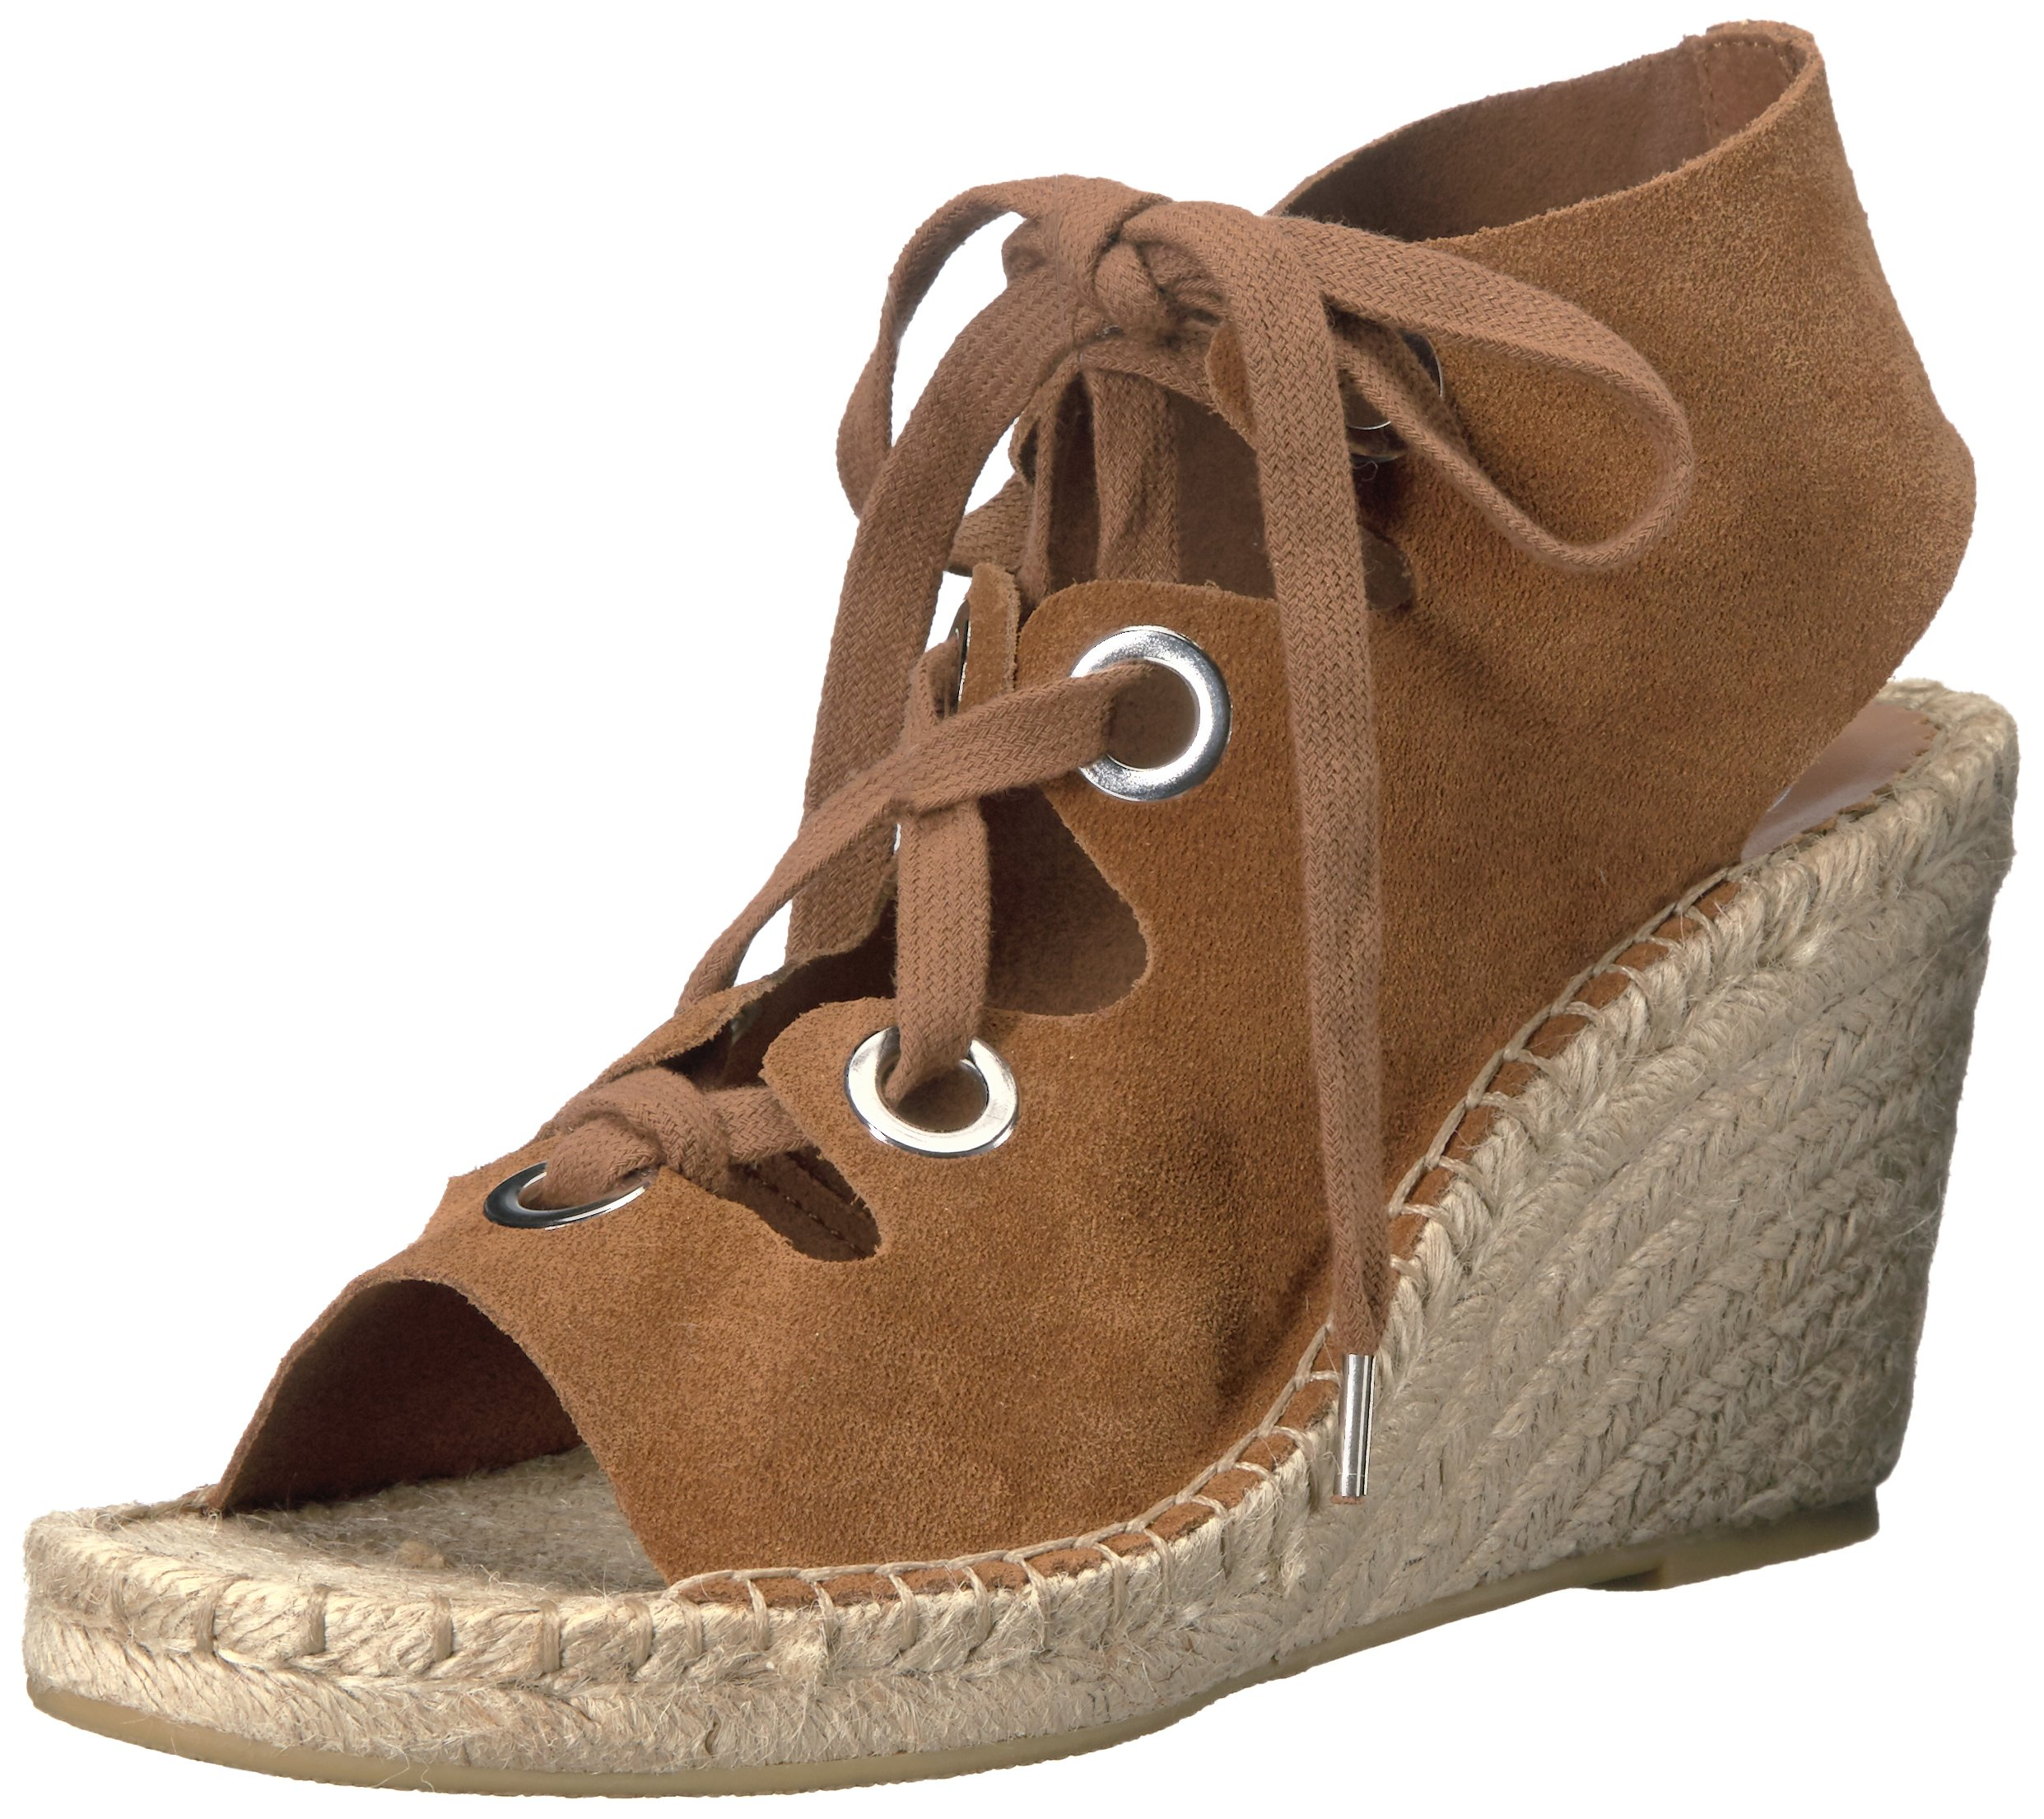 Ash Women's Patty Espadrille Wedge Sandal, Tan, 37 EU/7 M US